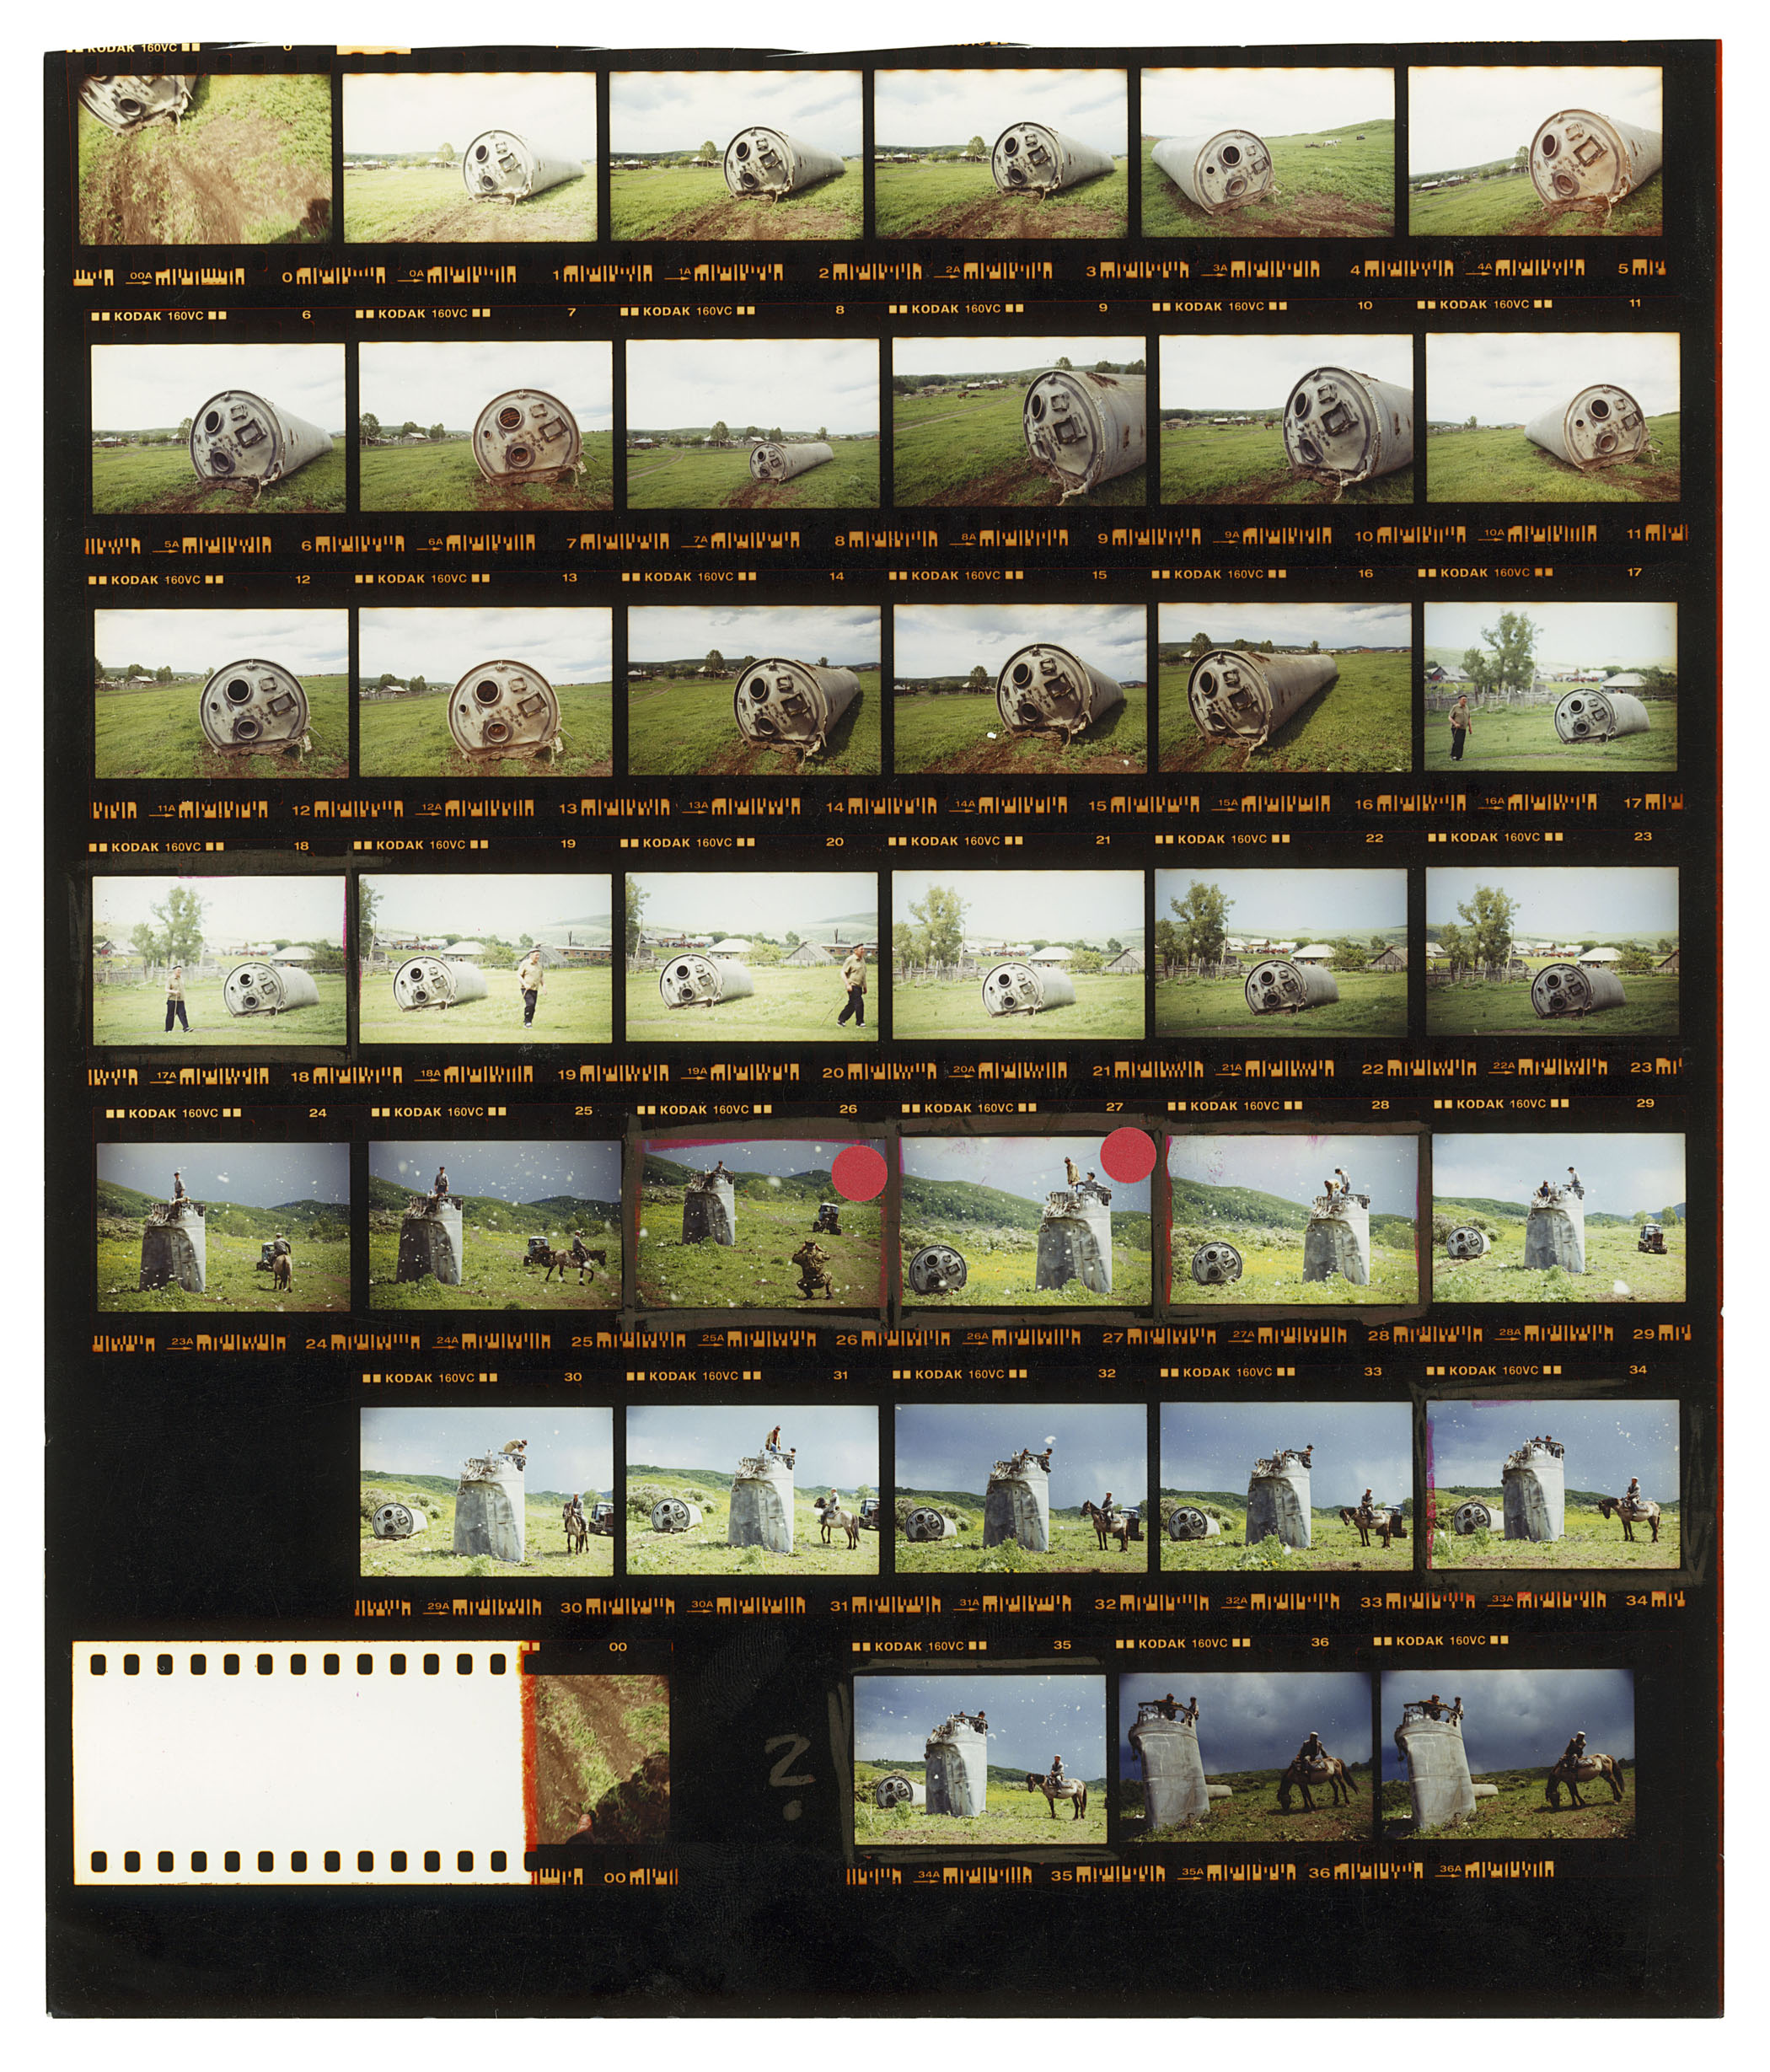 Jonas Bendiksen. RUSSIA. Altai Territory. 2000. Contact sheet. © Jonas Bendiksen/Magnum Photos.